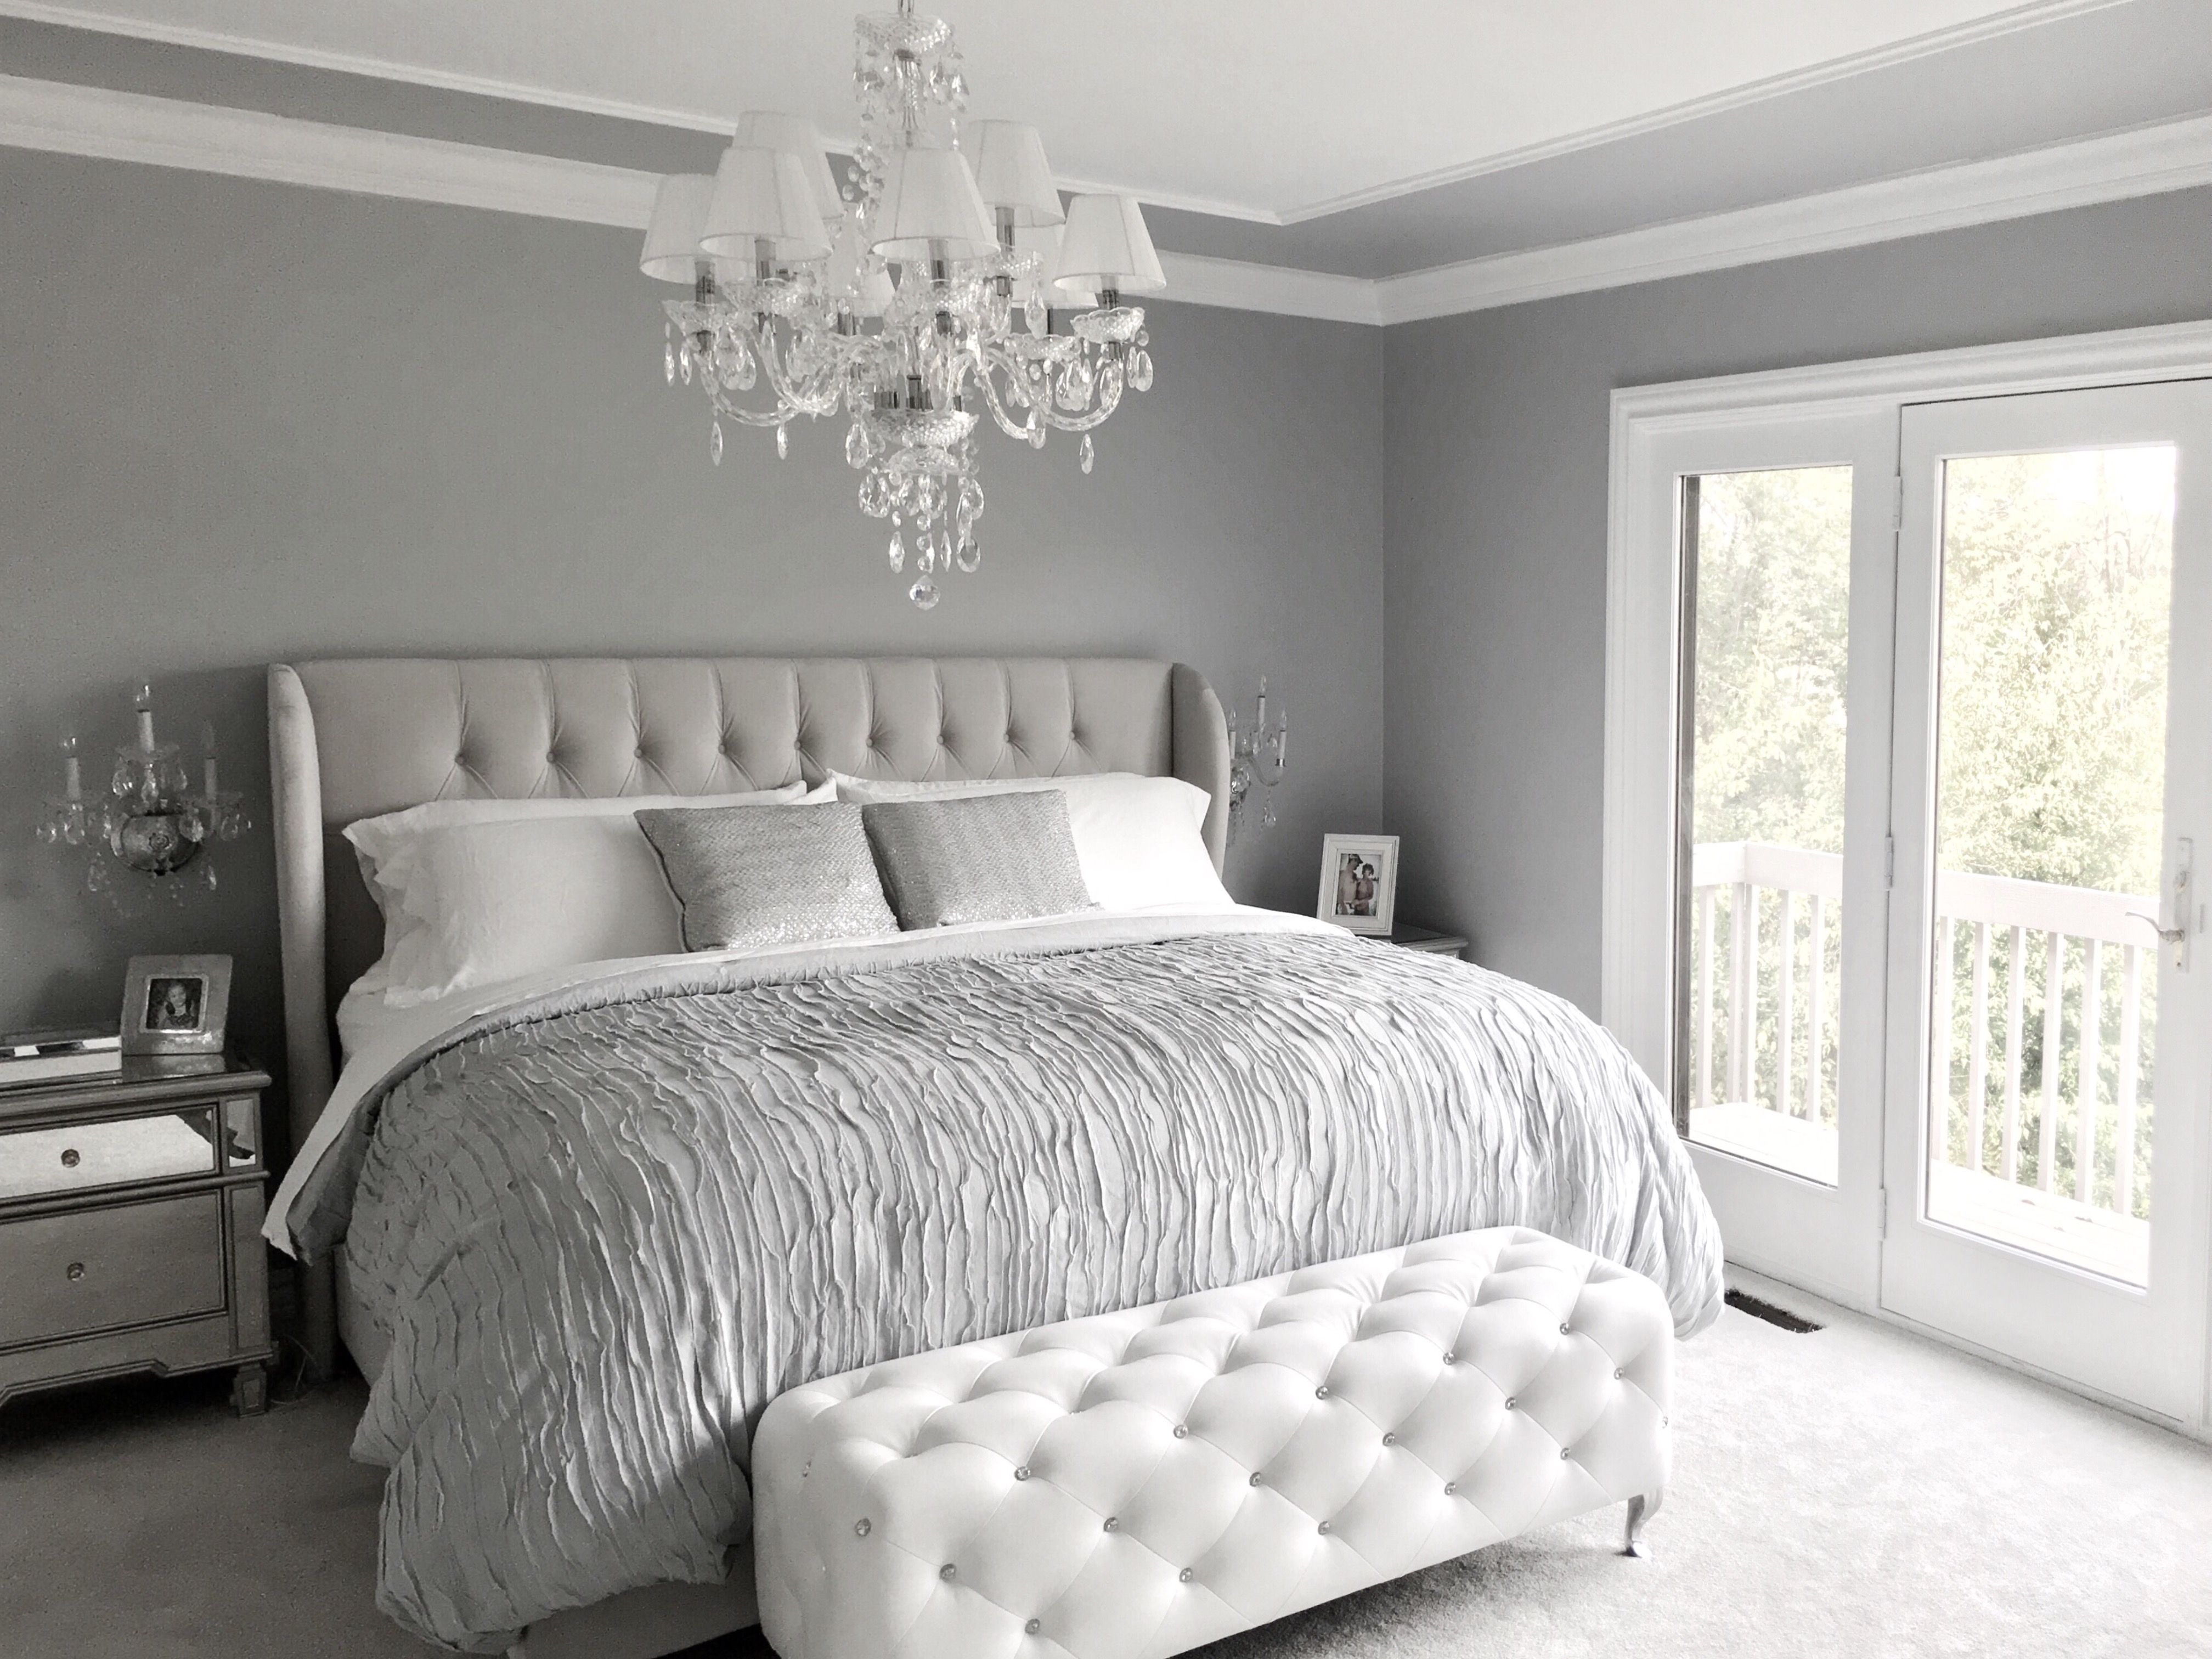 Bedroom Design Ideas Blue And Grey Glamorous Grey Bedroom Decor Grey Tufted Headboard